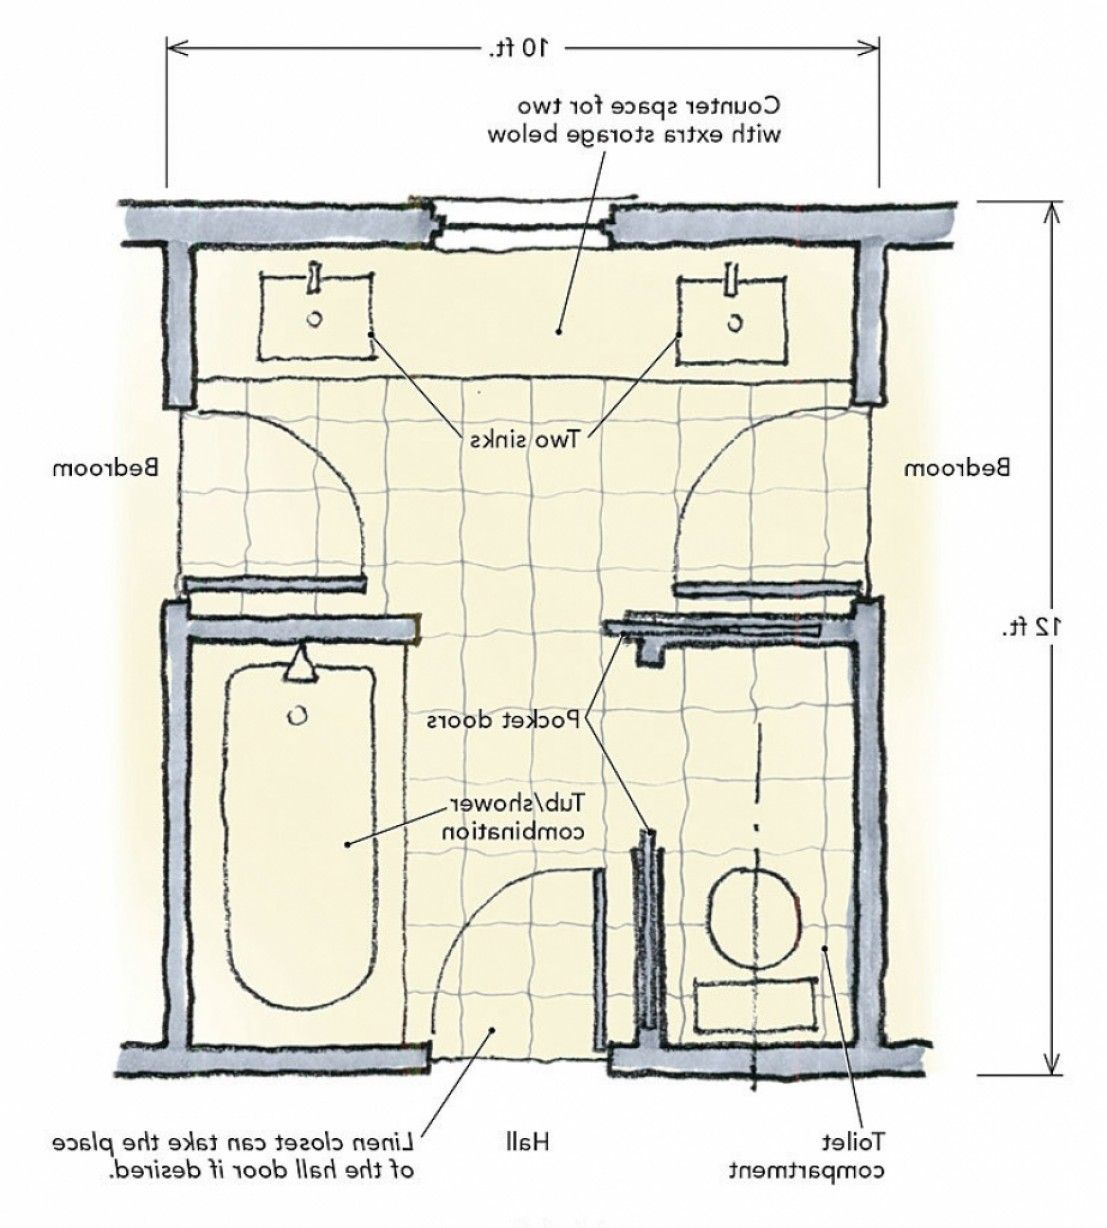 Superb Jack And Jill Bathroom Plans: Jack And Jill Bathroom Designs Jack Jill  Bathroom Layout Bathroom Ideas